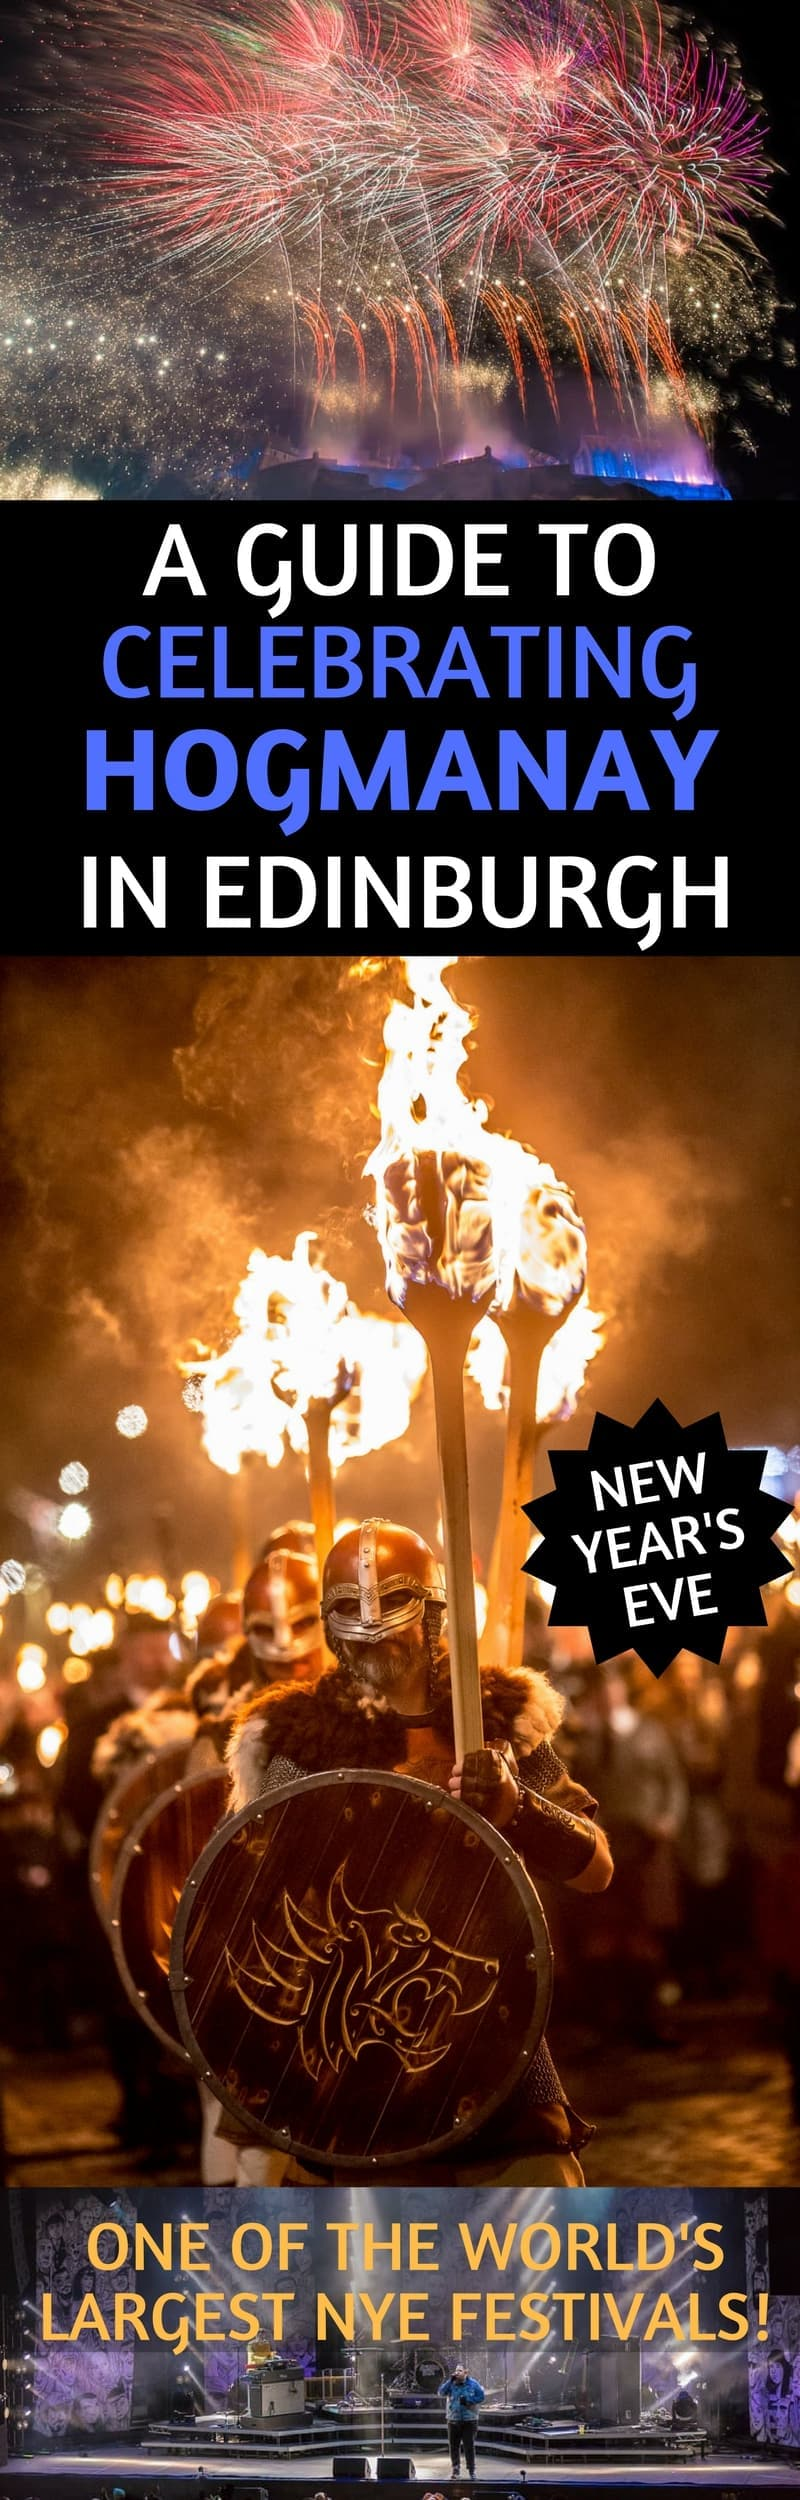 A guide to celebrating Hogmanay in Edinburgh Scotland, one of the largest New Year's Eve celebrations in the world! We live in Scotland & have attended Hogmanay several times, and we share our tips, advice, and break down the events day by day so you can get the most out of the festival and your trip to Edinburgh! #Hogmanay #Edinburgh #Scotland #festival #NYE #NewYearsEve